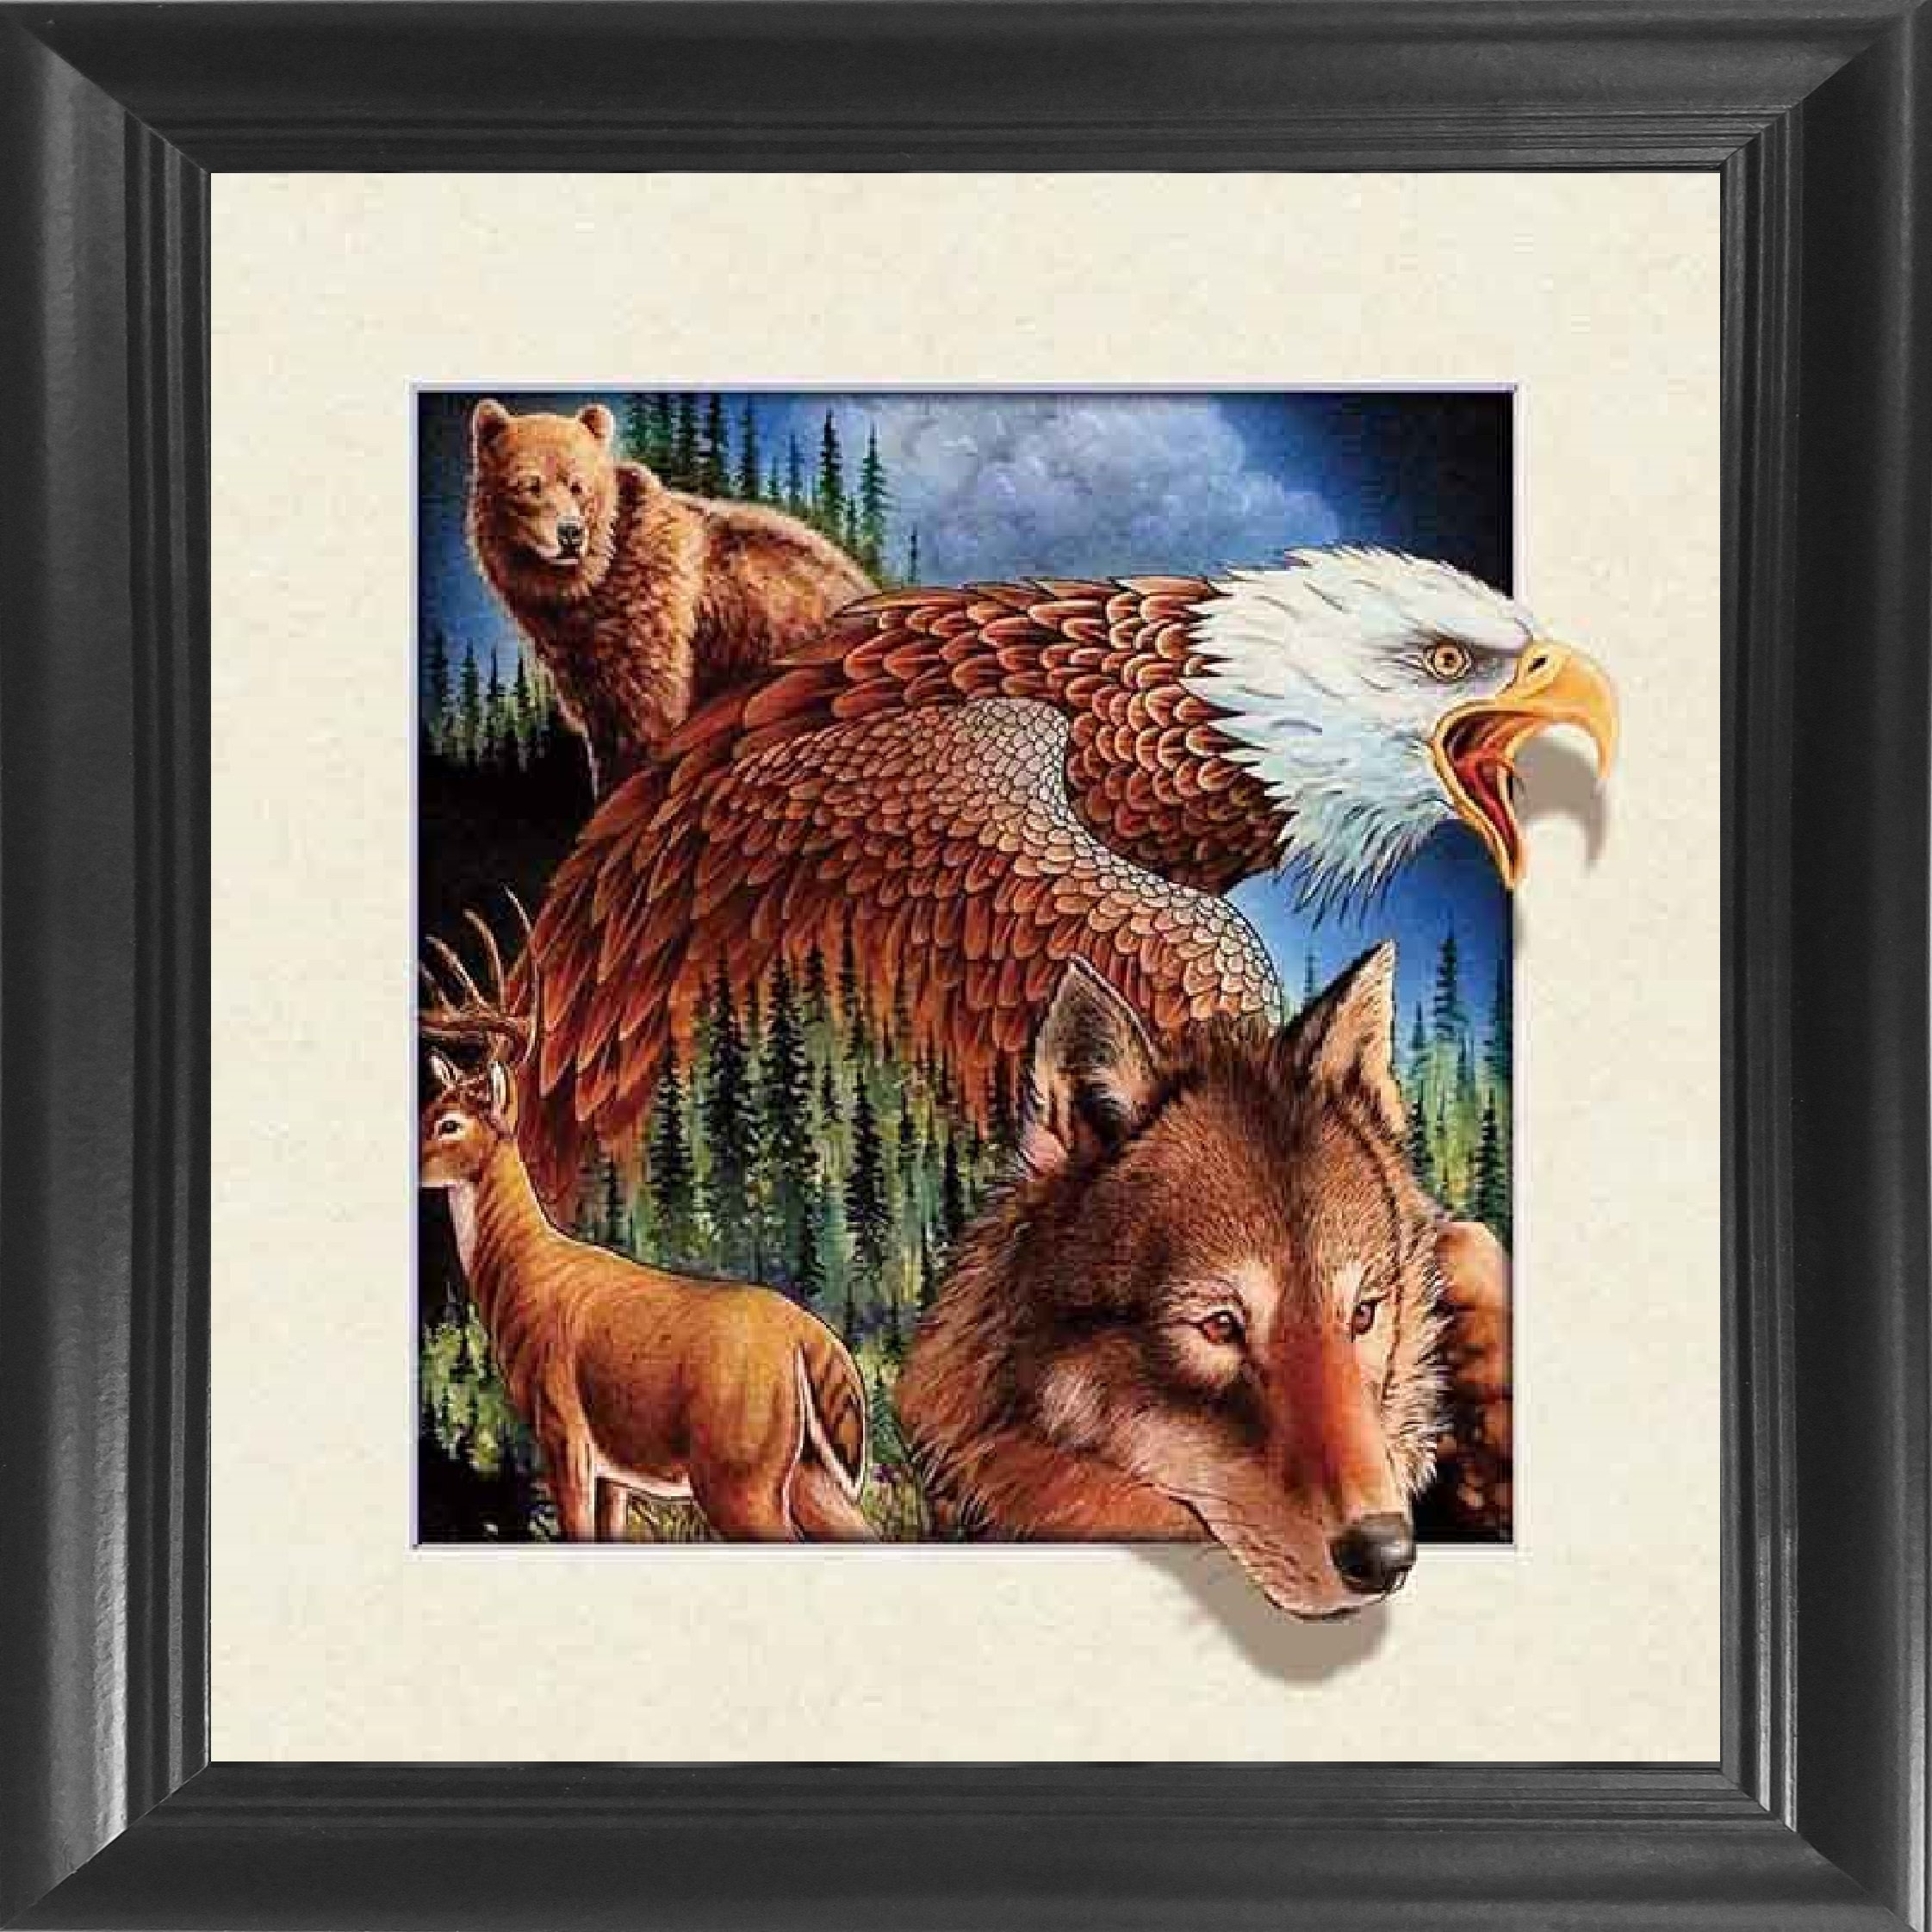 Wild Animals, Wolf, Eagle, Deer & Bear Framed 18.5x18.5'' 5D / 3D Lenticular Picture - Life Like 3D Art Image, Animated Posters, Cool Art Deco, Unique Wall Art Decor, Dozens to Choose From!